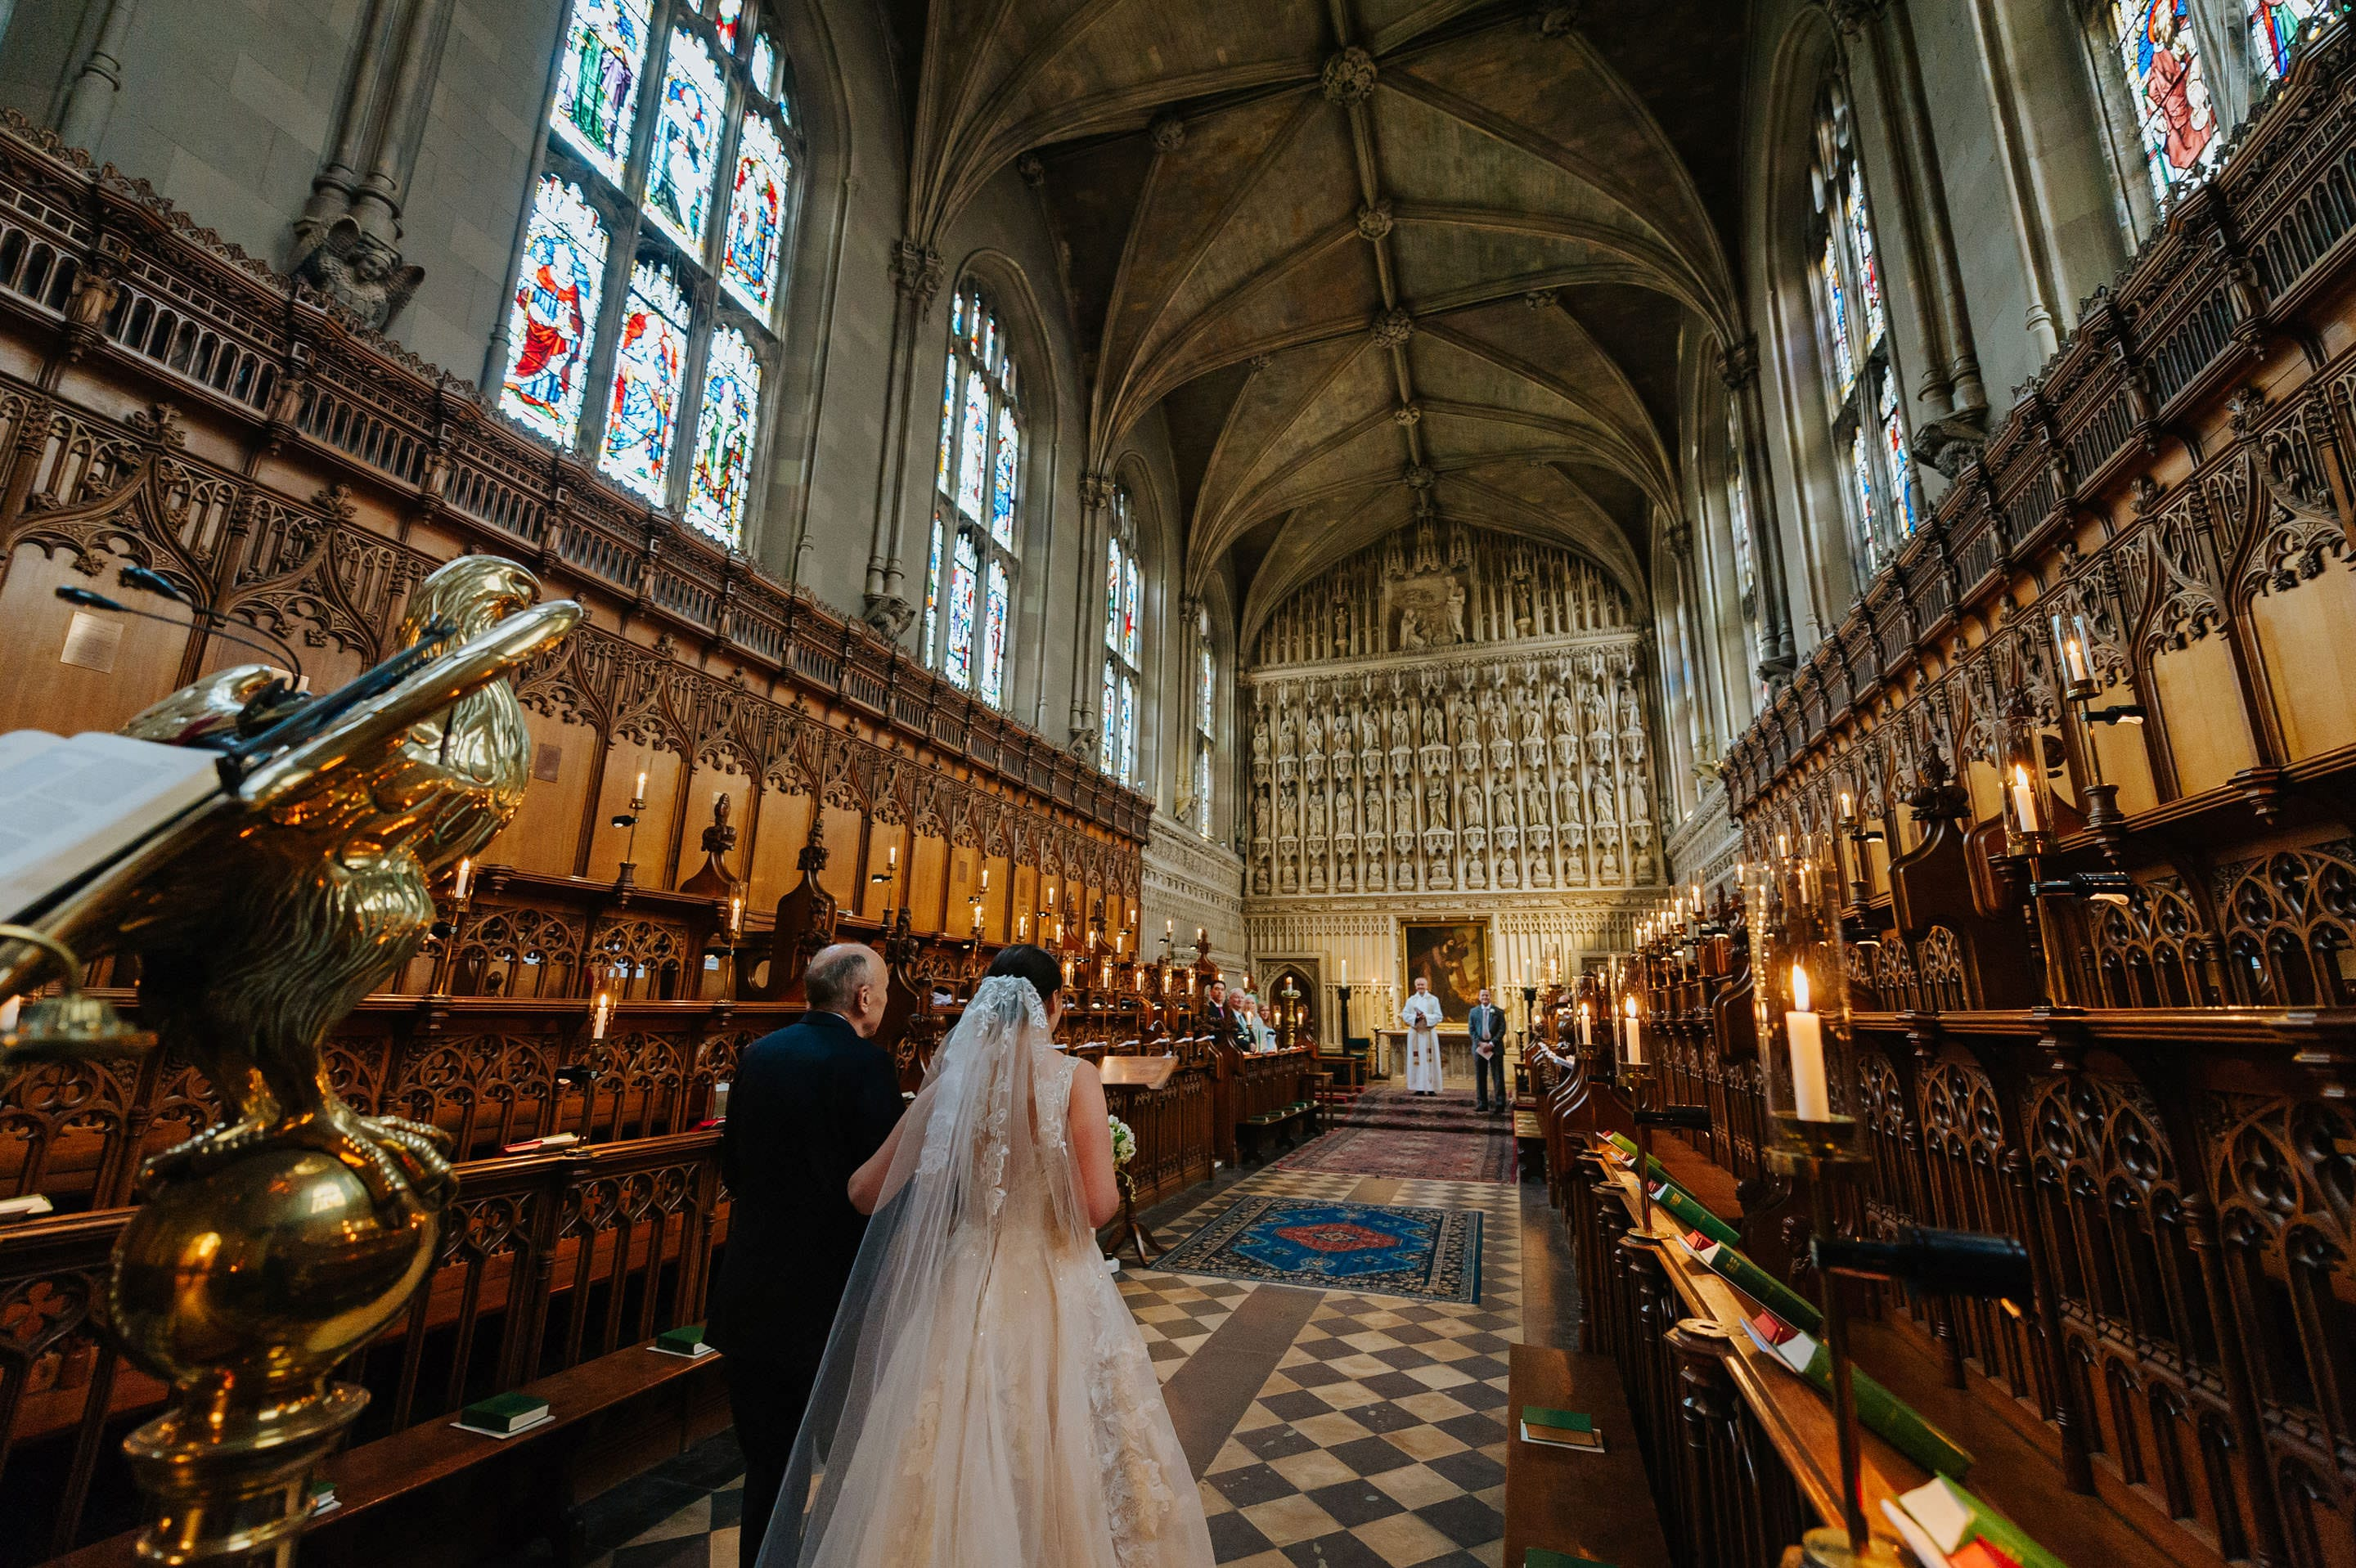 wedding at magdalen college in oxford 20 - Tommie + Virginia | Wedding at Magdalen College in Oxford